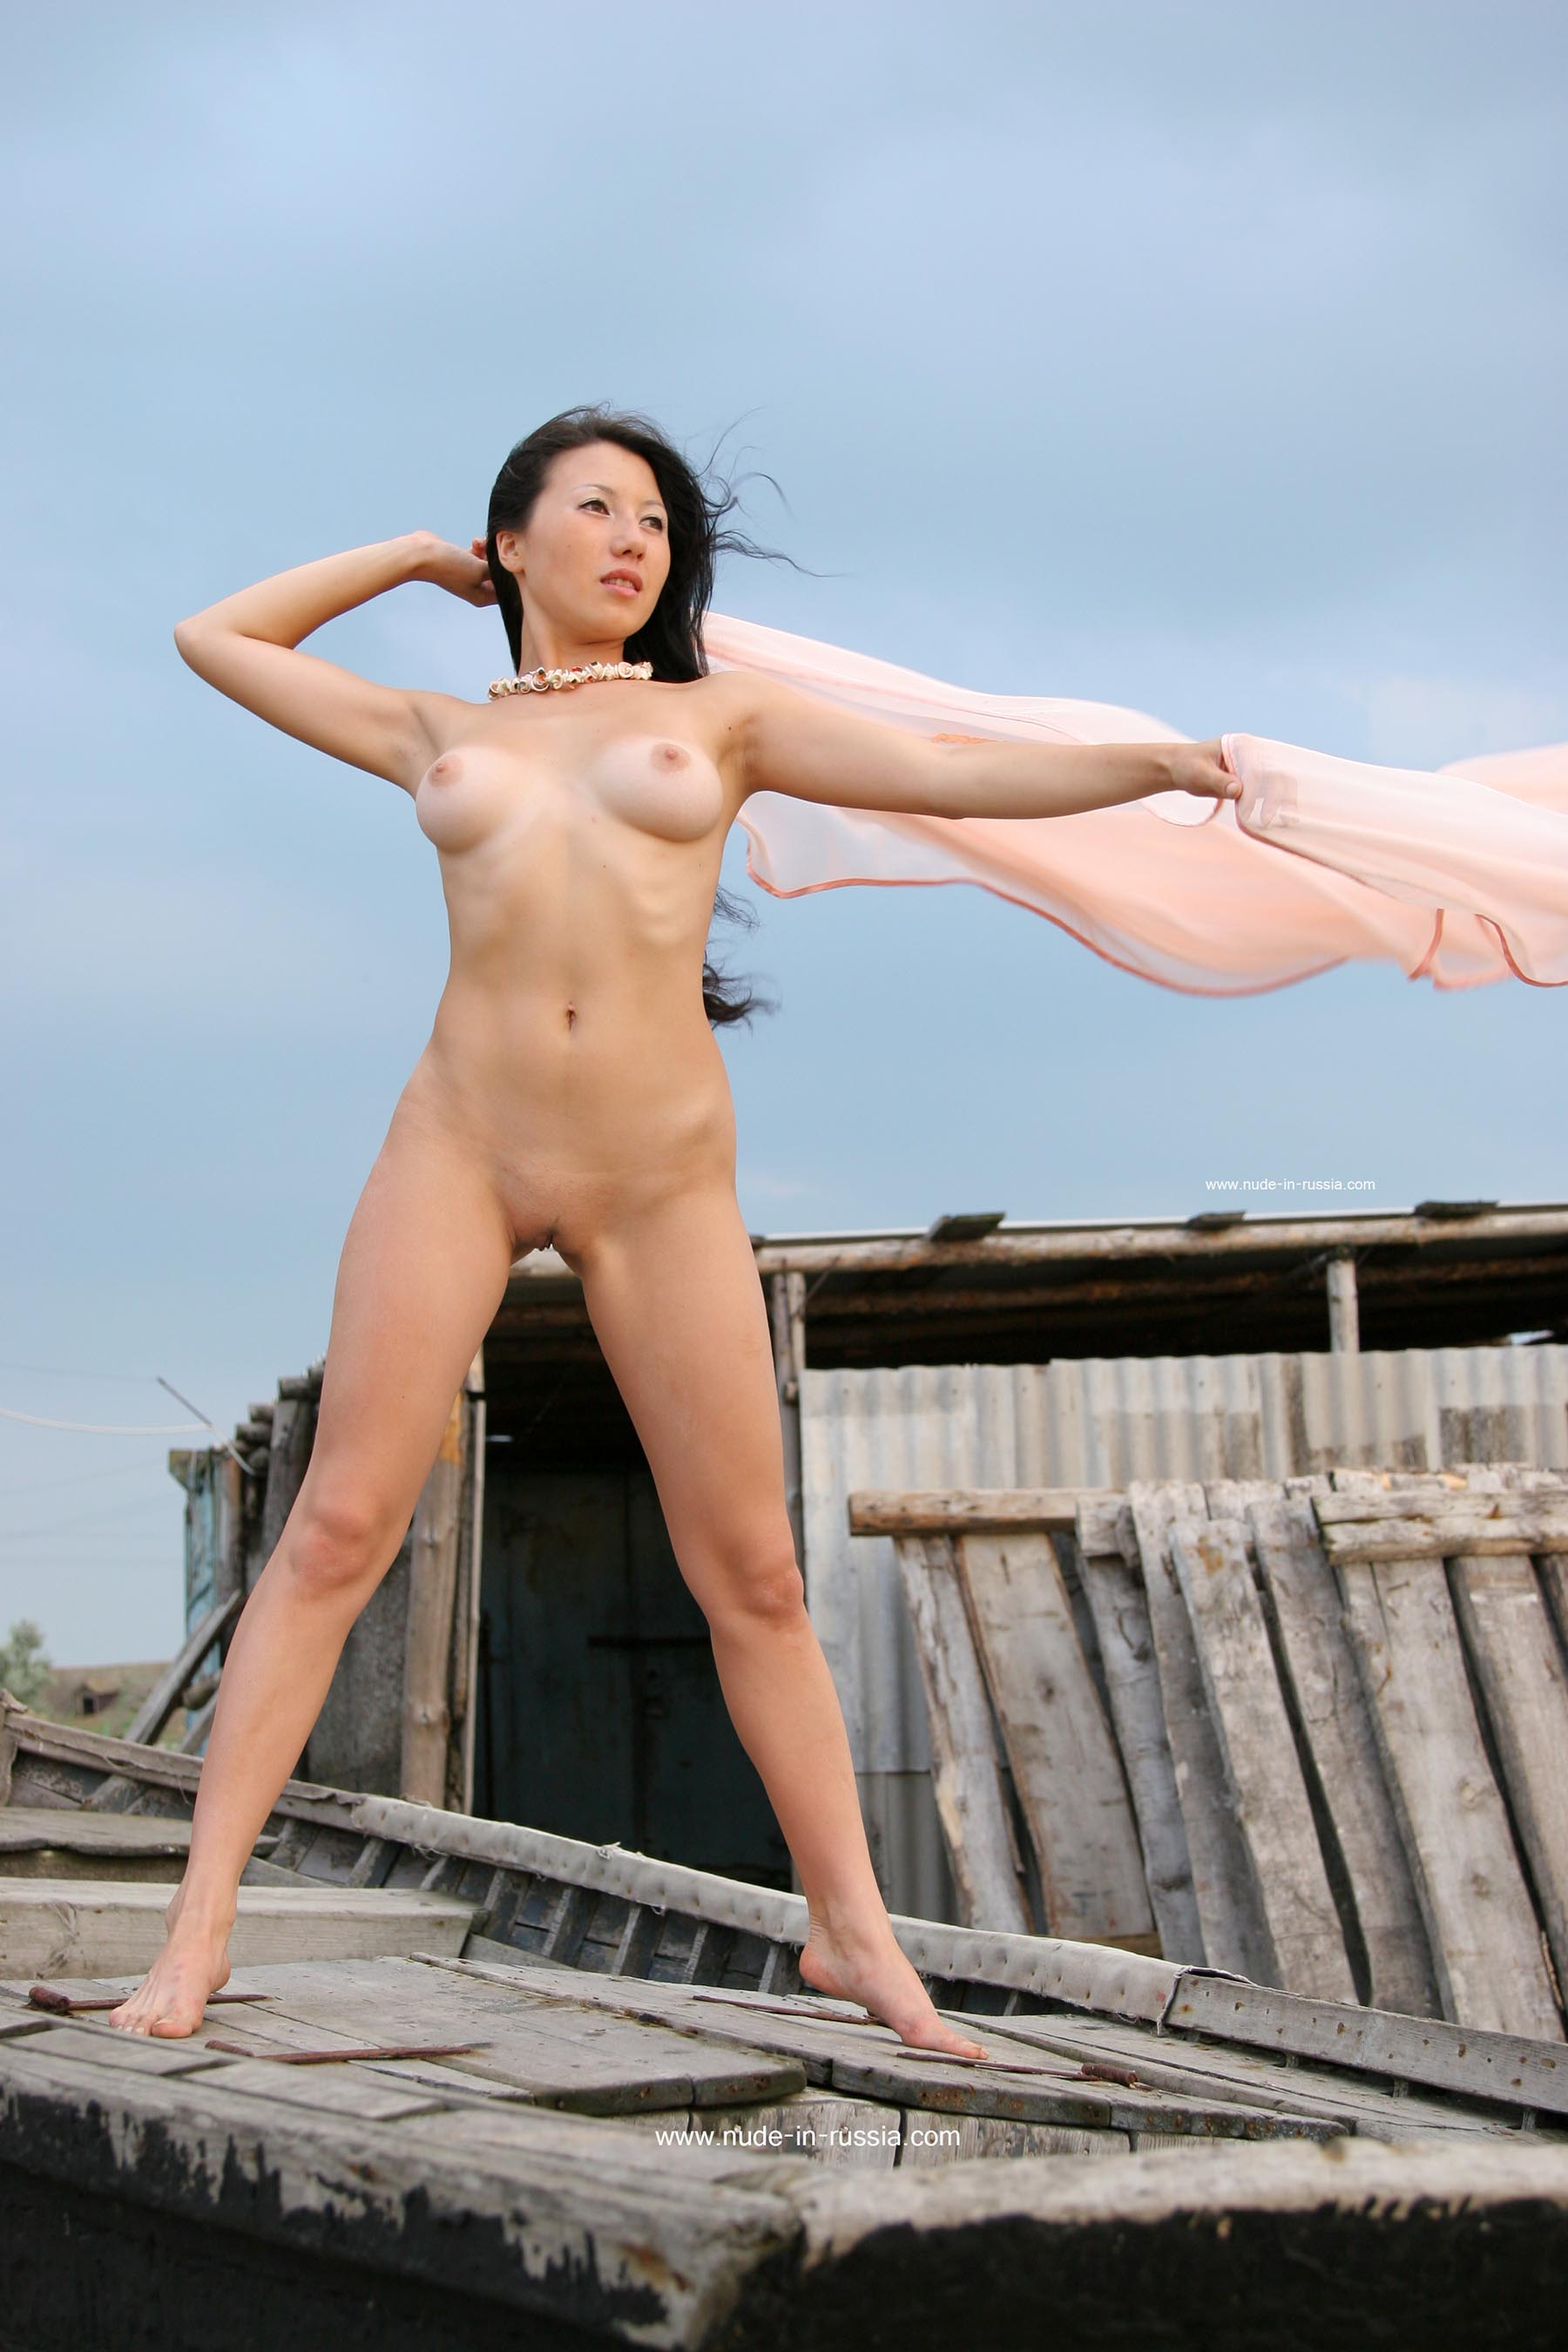 Nude mude sex film